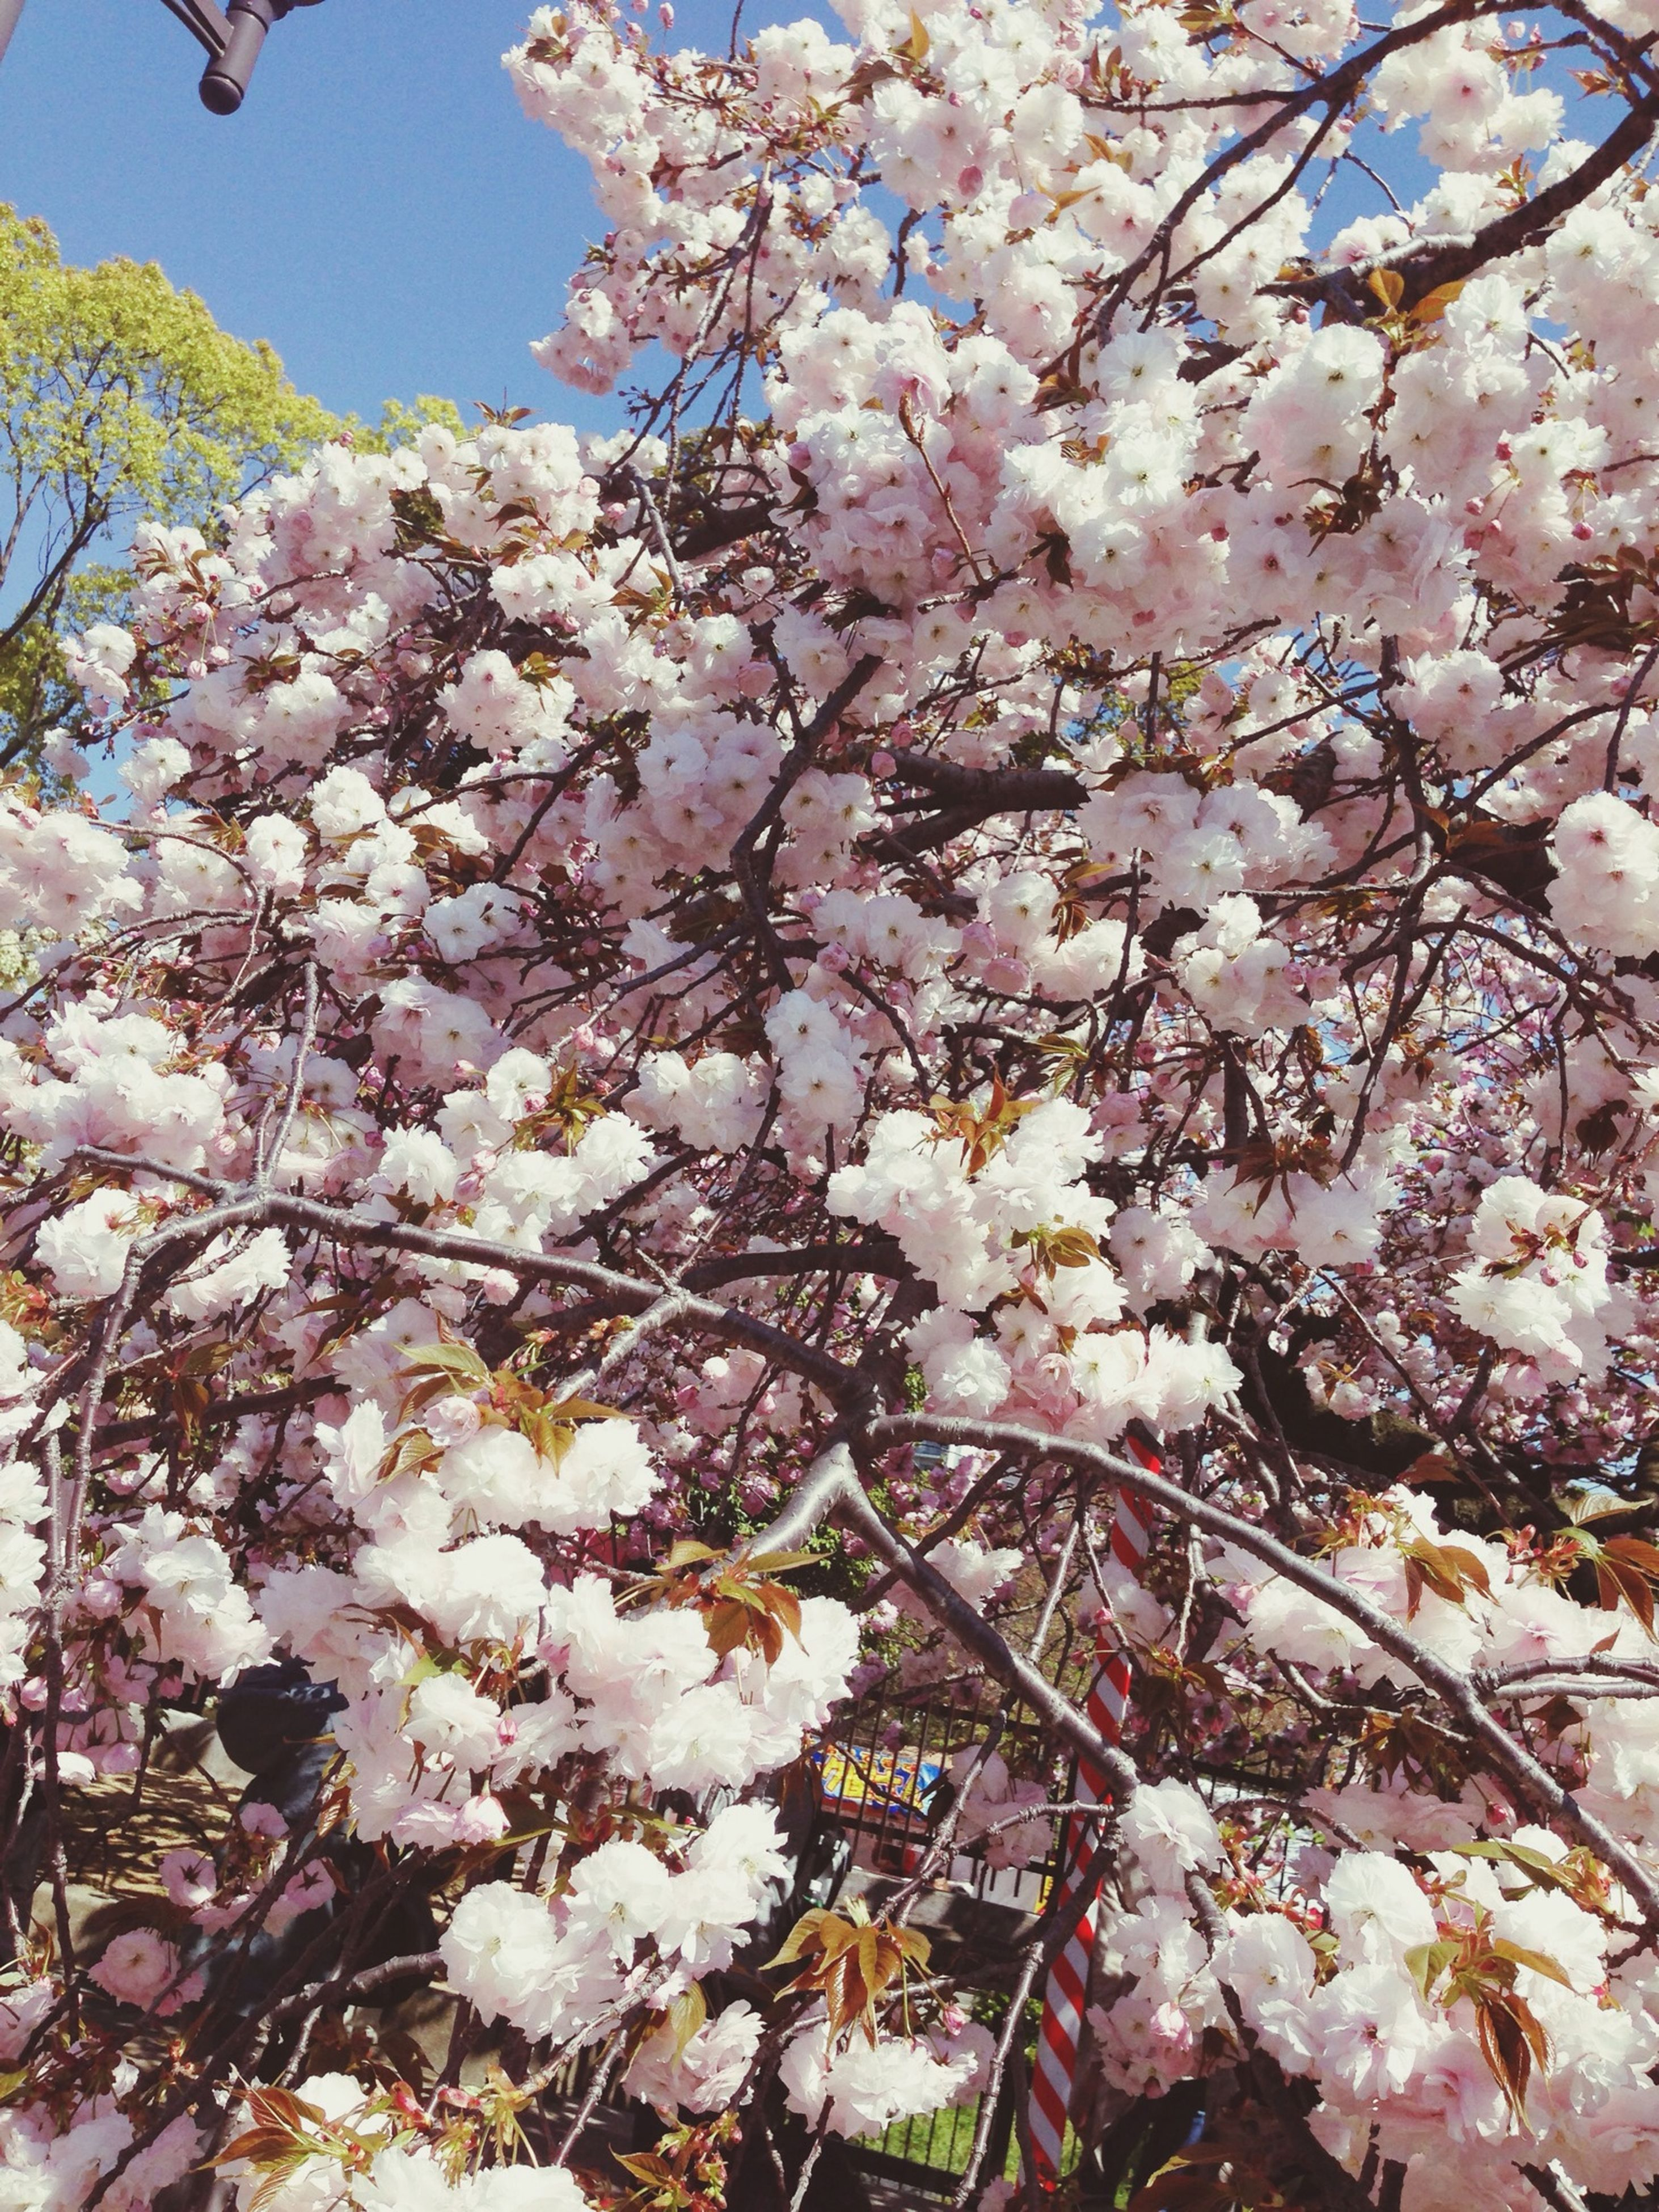 flower, freshness, tree, branch, cherry blossom, blossom, fragility, cherry tree, growth, beauty in nature, pink color, nature, low angle view, springtime, in bloom, fruit tree, blooming, orchard, petal, botany